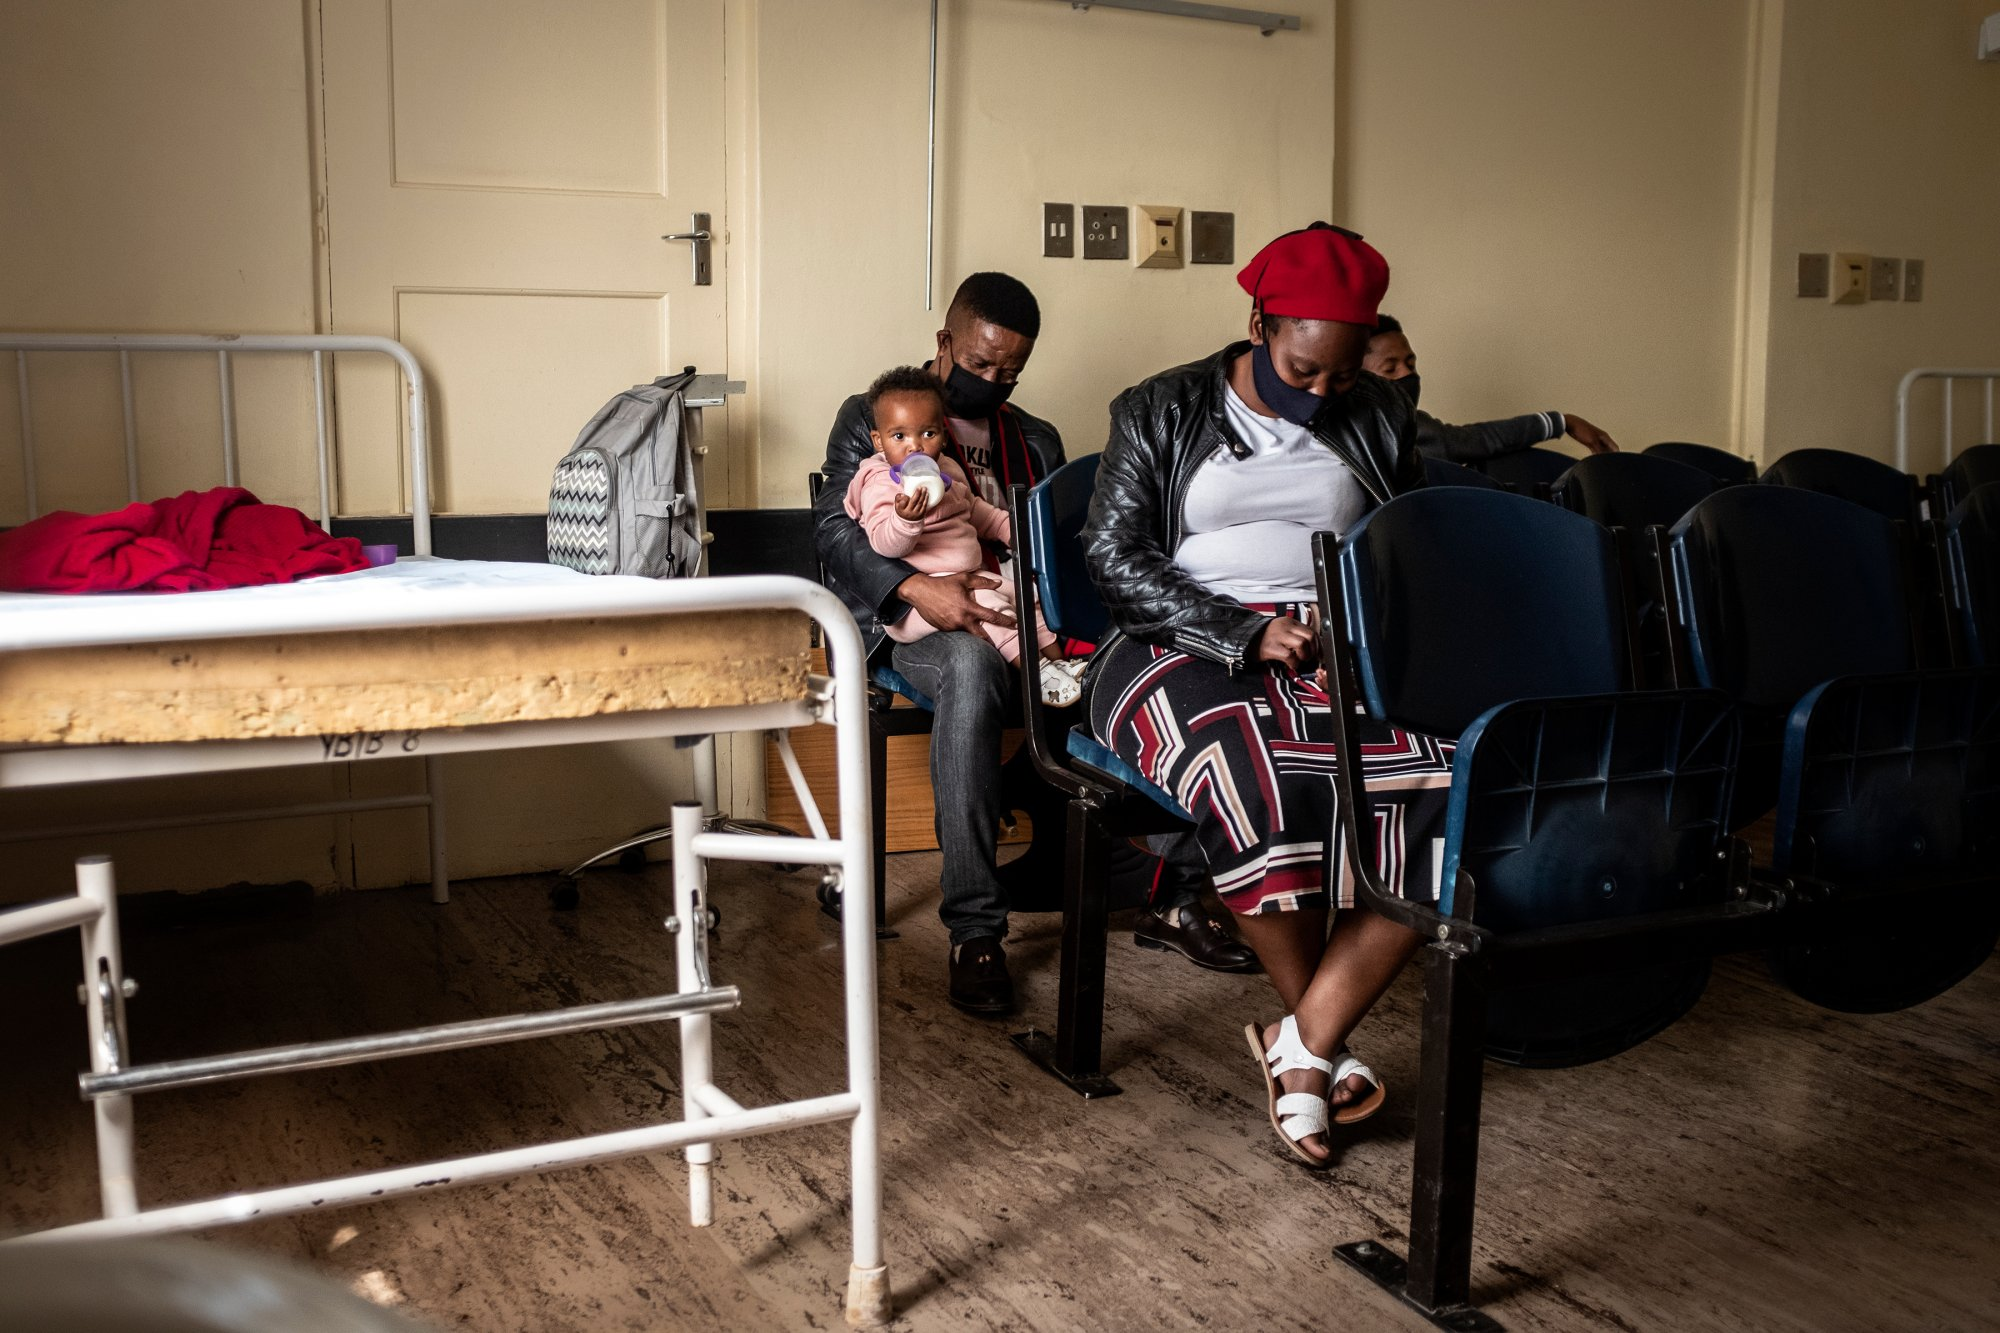 Patients await assistance at the Reivilo Health Centre in Reivilo on September 4, 2020.   Thomson Reuters Foundation/Gulshan Khan